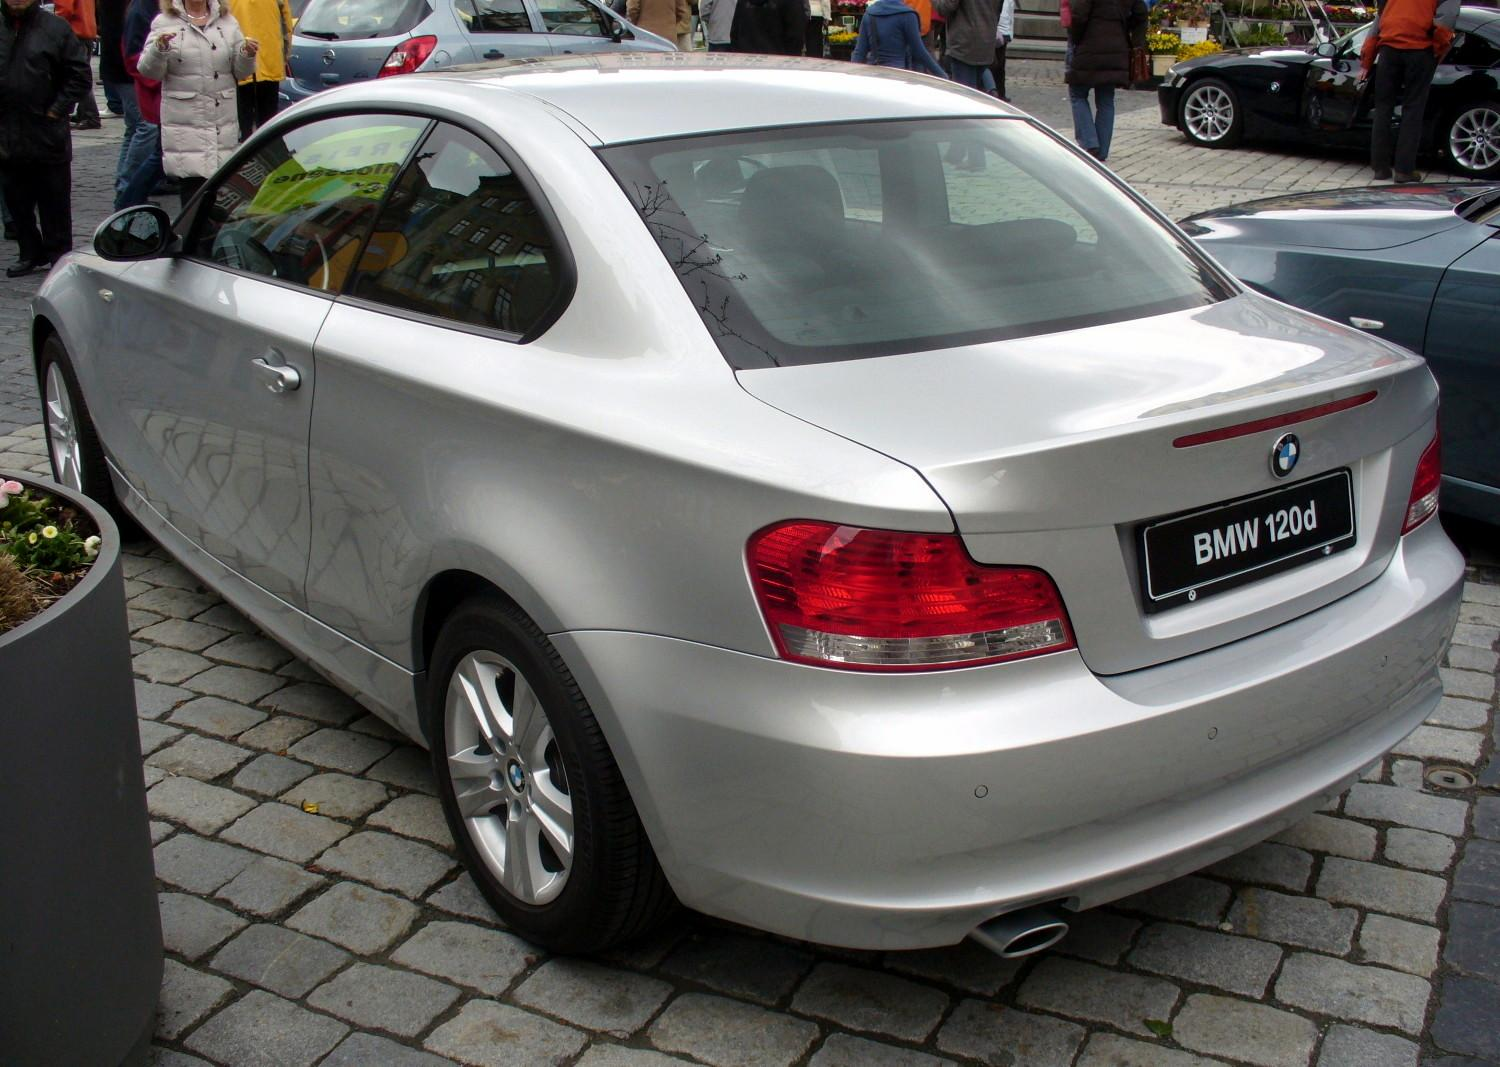 Filebmw E82 120d Titansilber Heckjpg Wikimedia Commons